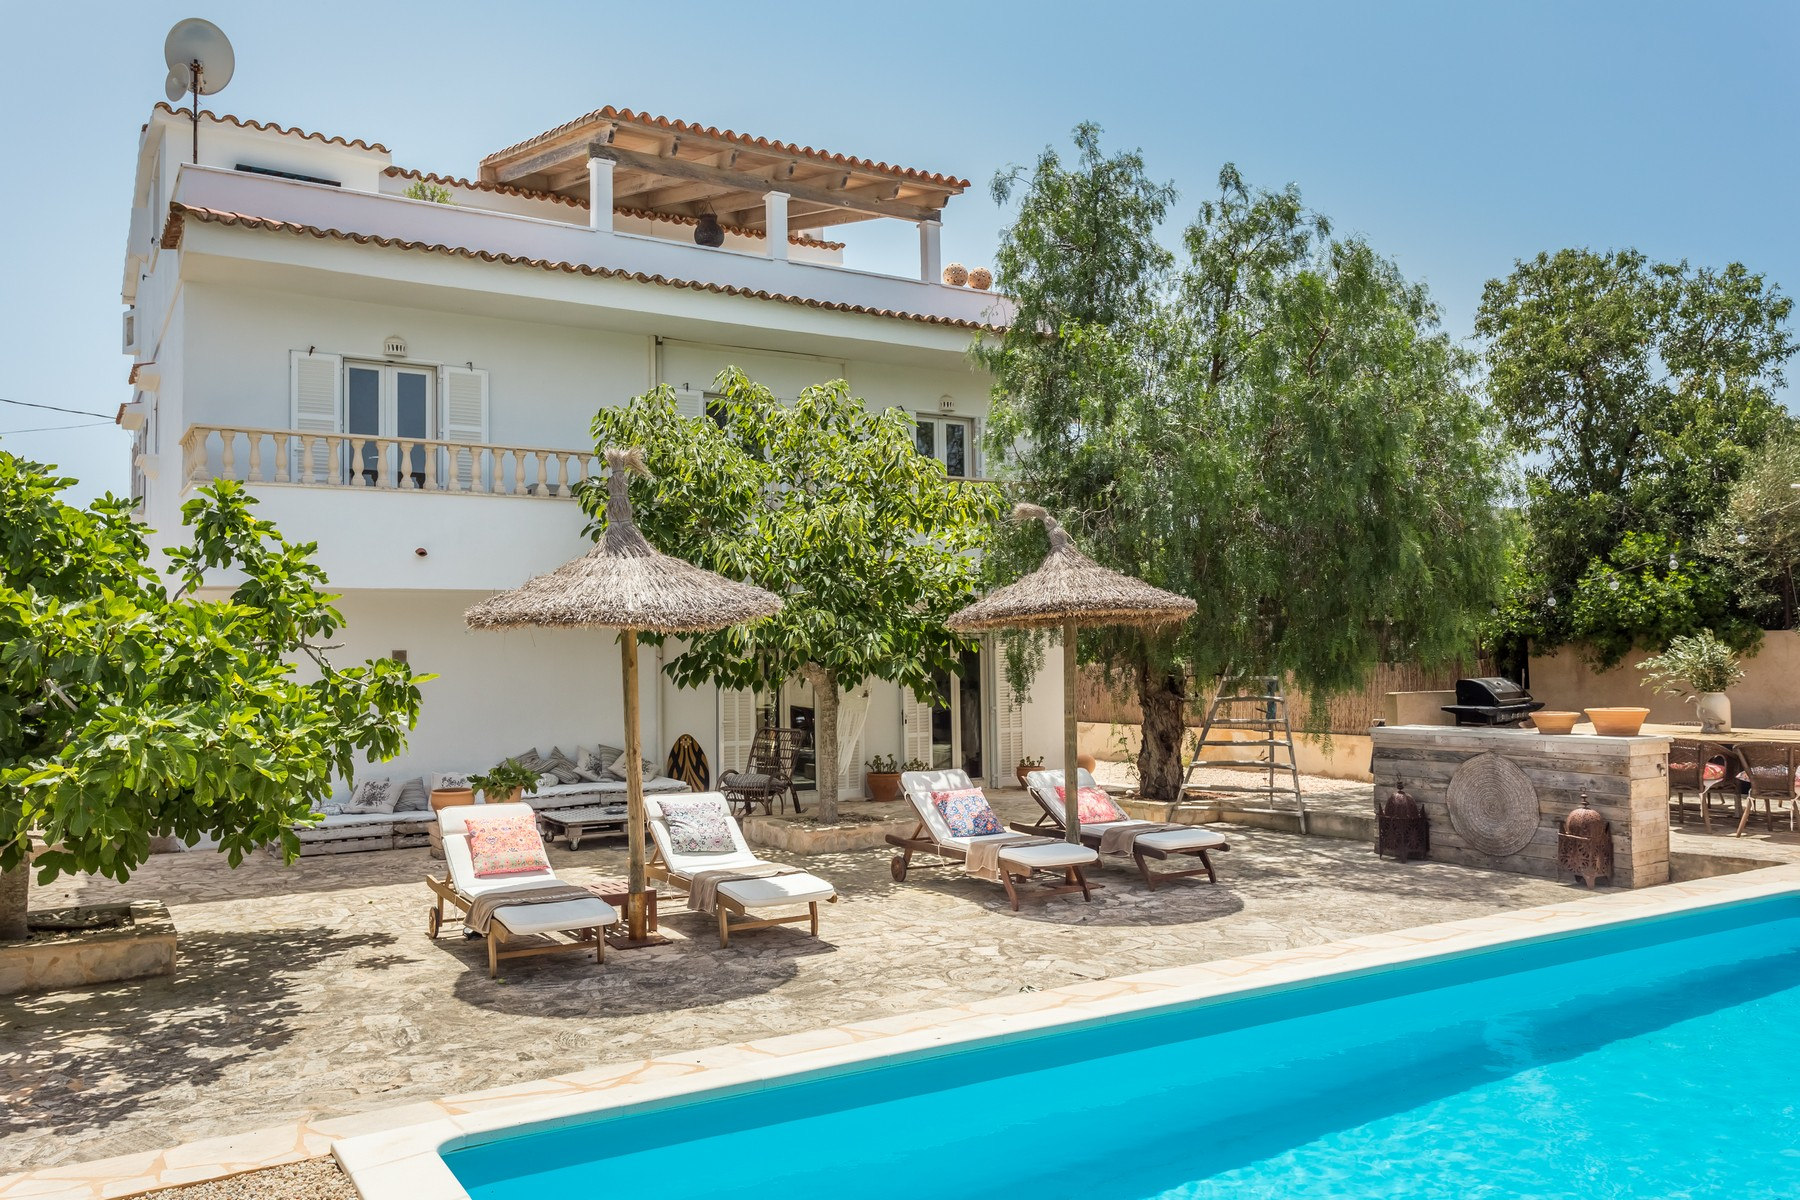 Single Family Home for Rent at Charming villa in Cala Llombards Cala Llombards, Mallorca, 07690 Spain